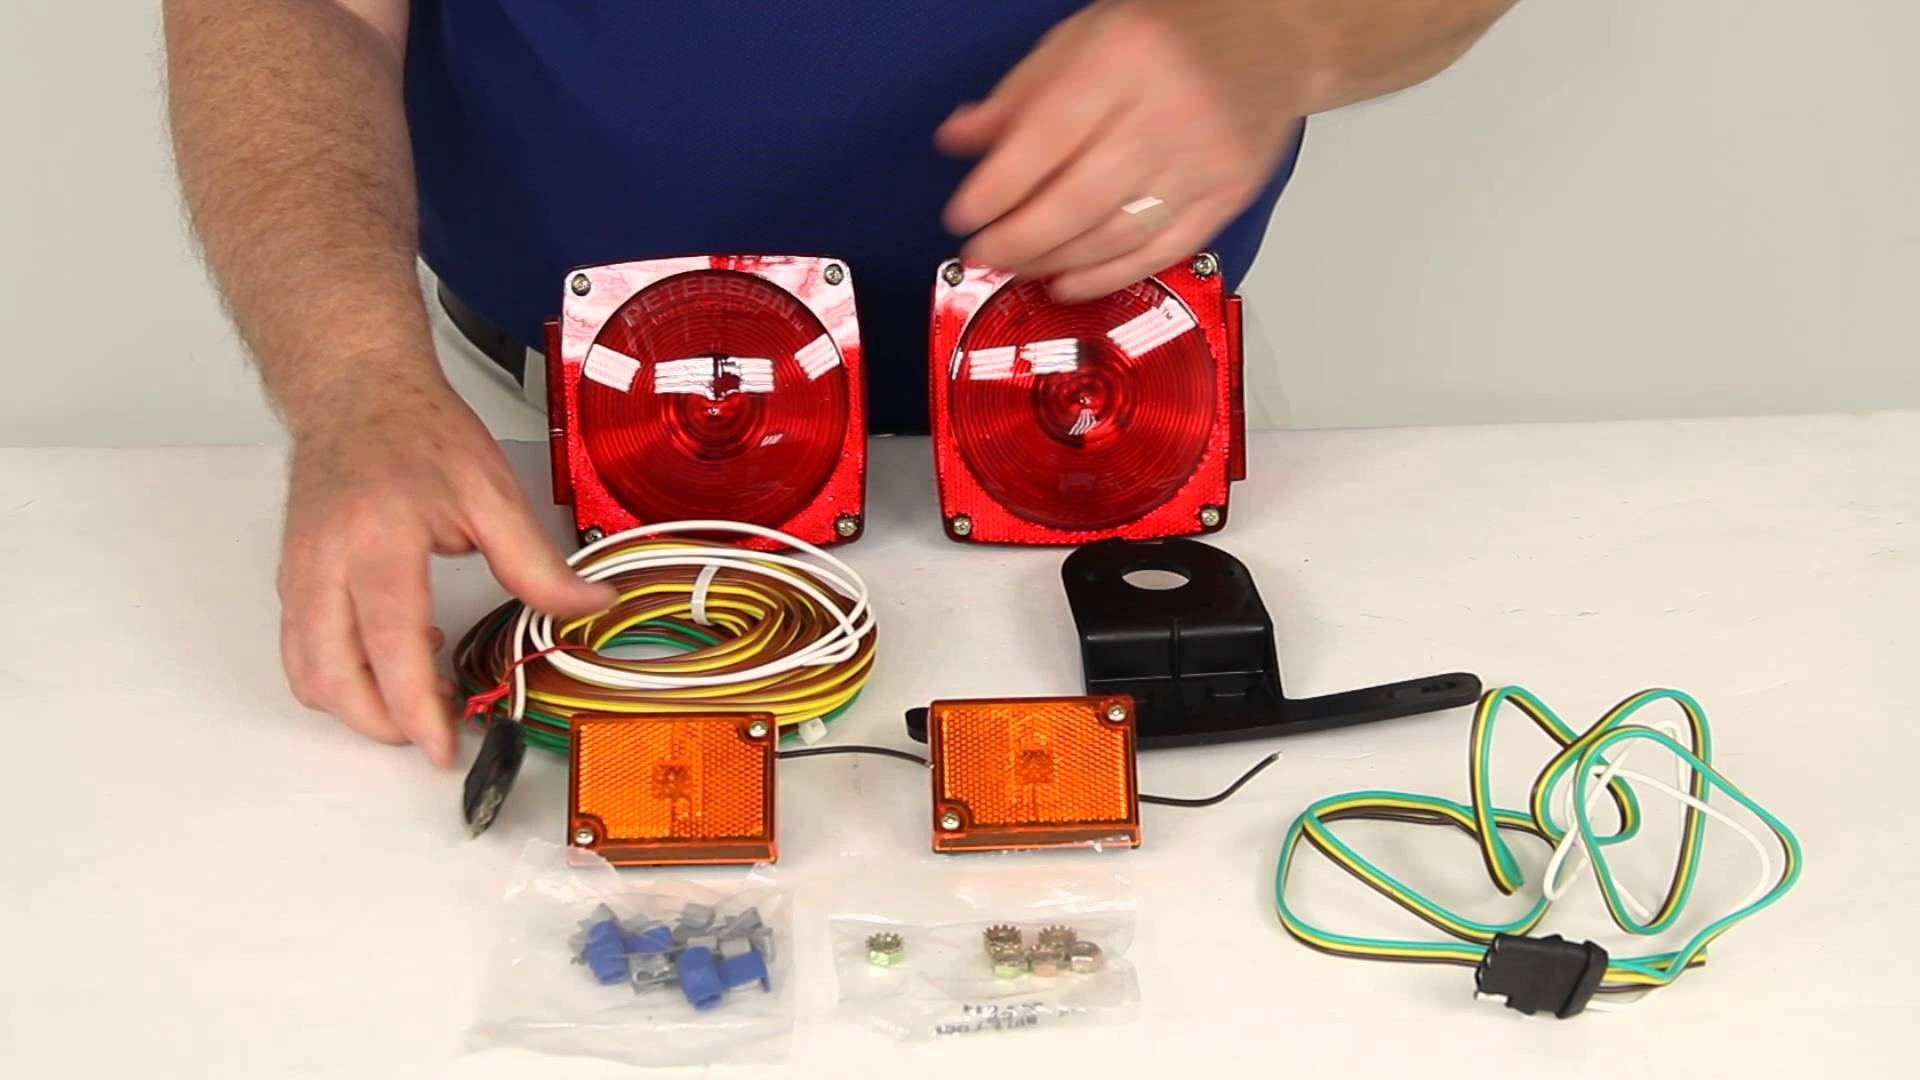 Review Peterson Trailer Lights Etrailer Review Wiring Harness Full Size